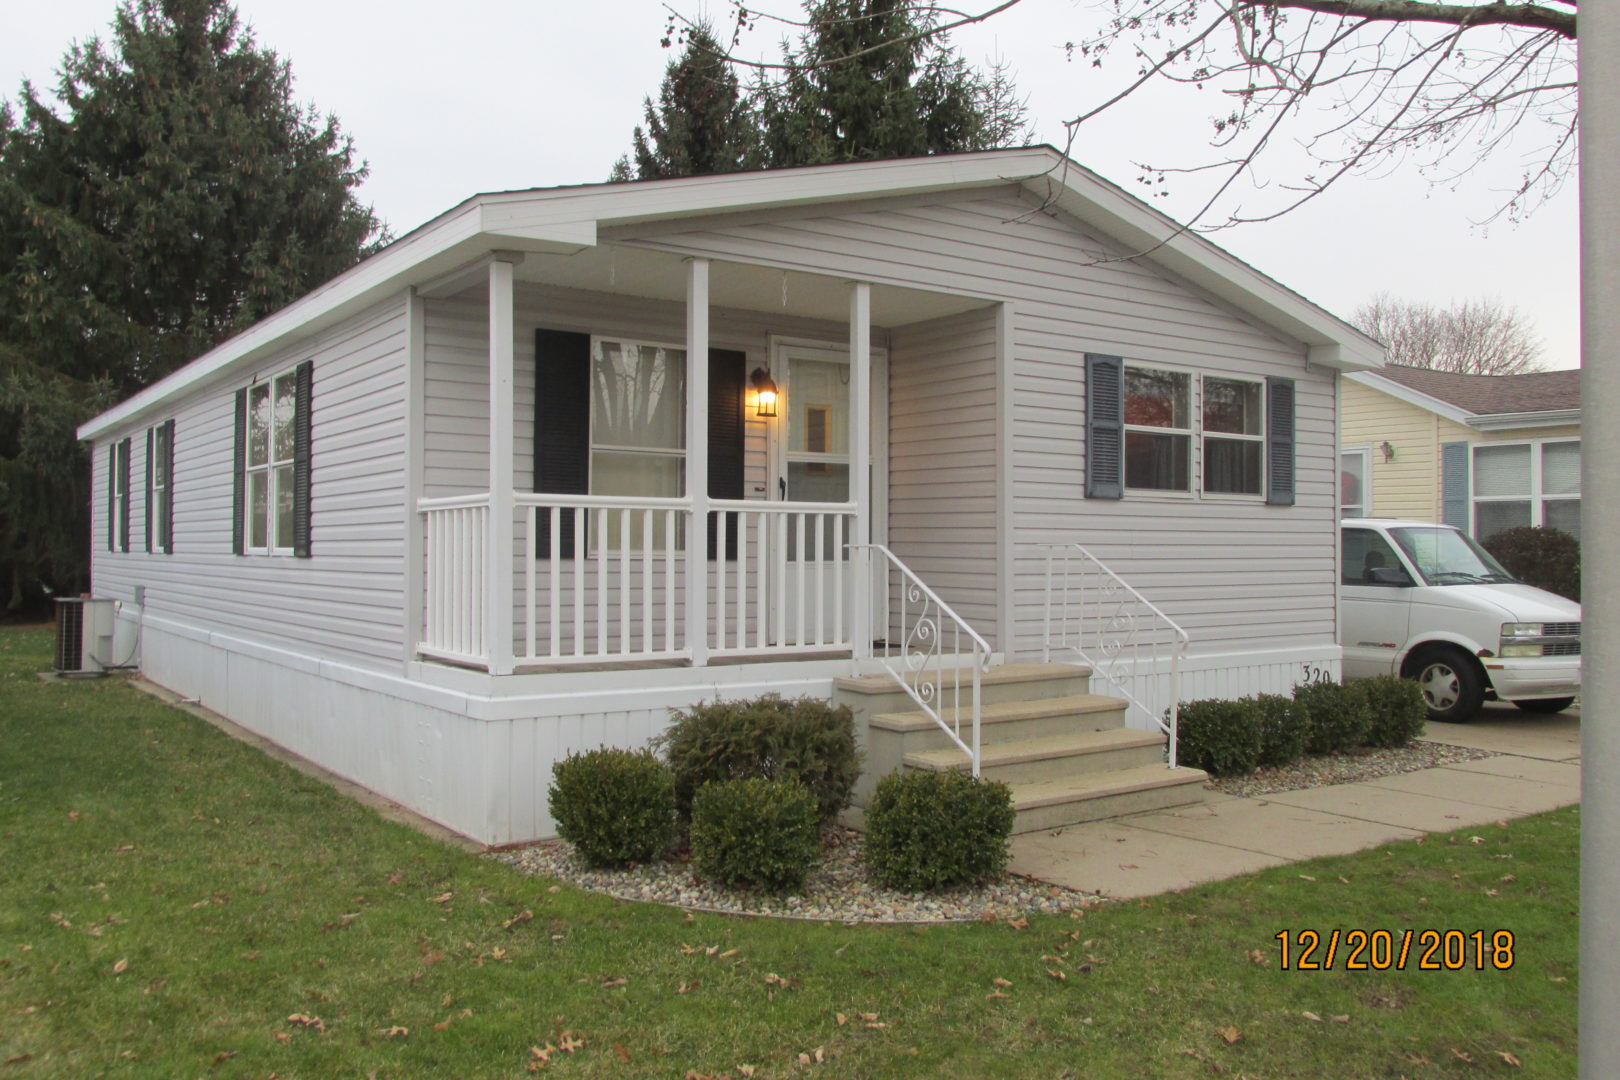 Pristine 2 bedroom mobile home